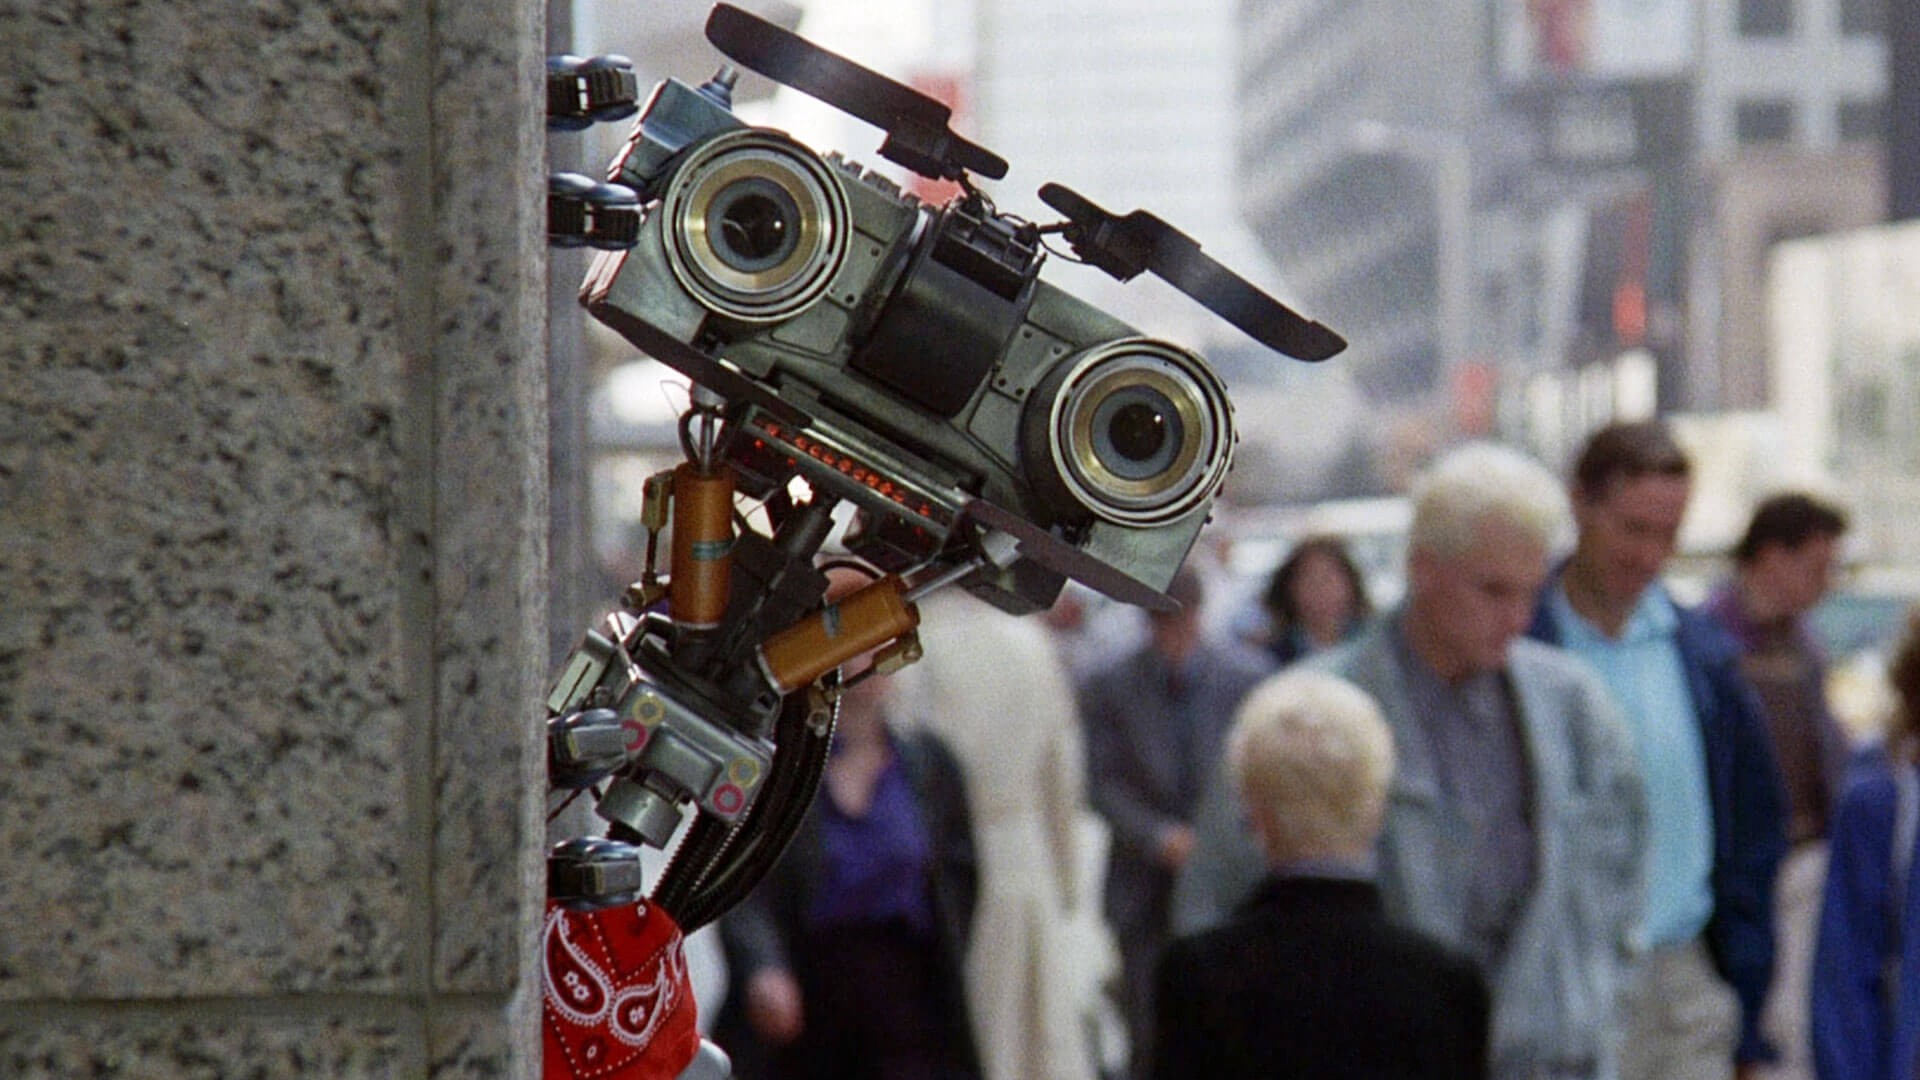 to built but its fun johnny 5 a robot in the movie short circuit rh joox4qy2 101drivers info